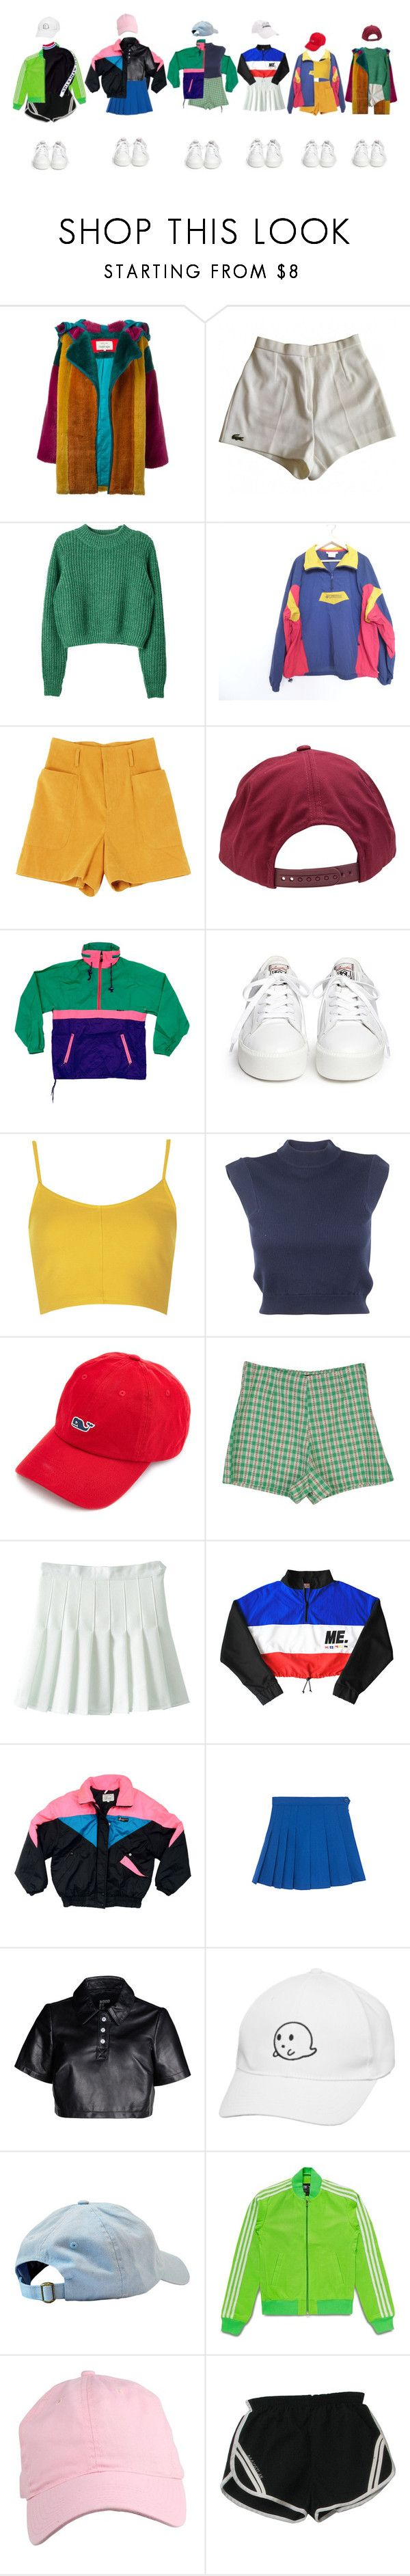 """dance girl"" by yonce4park ❤ liked on Polyvore featuring JC de Castelbajac, Lacoste, Brixton, Ash, Topshop, Carven, StyleNanda, Hood by Air, adidas Originals and Tommy Hilfiger"